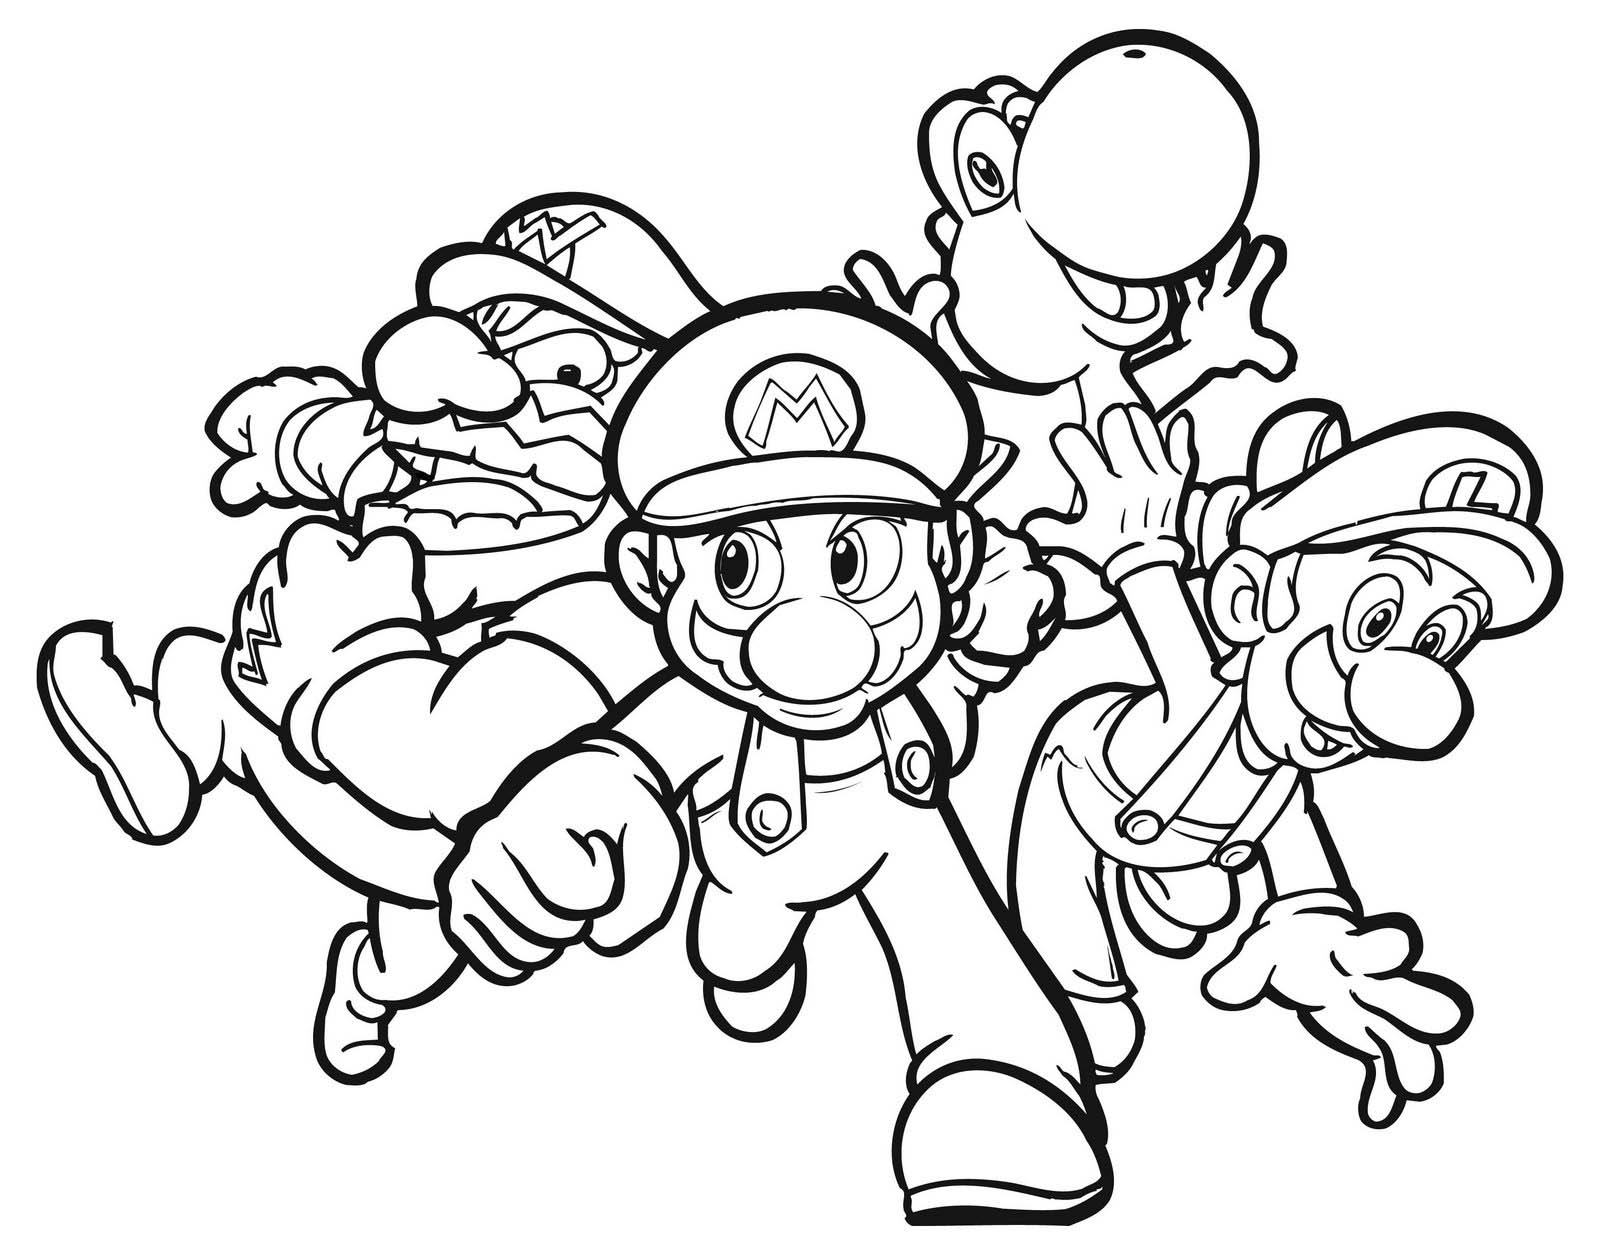 mario pictures to print super paper mario coloring pages at getcoloringscom print mario to pictures